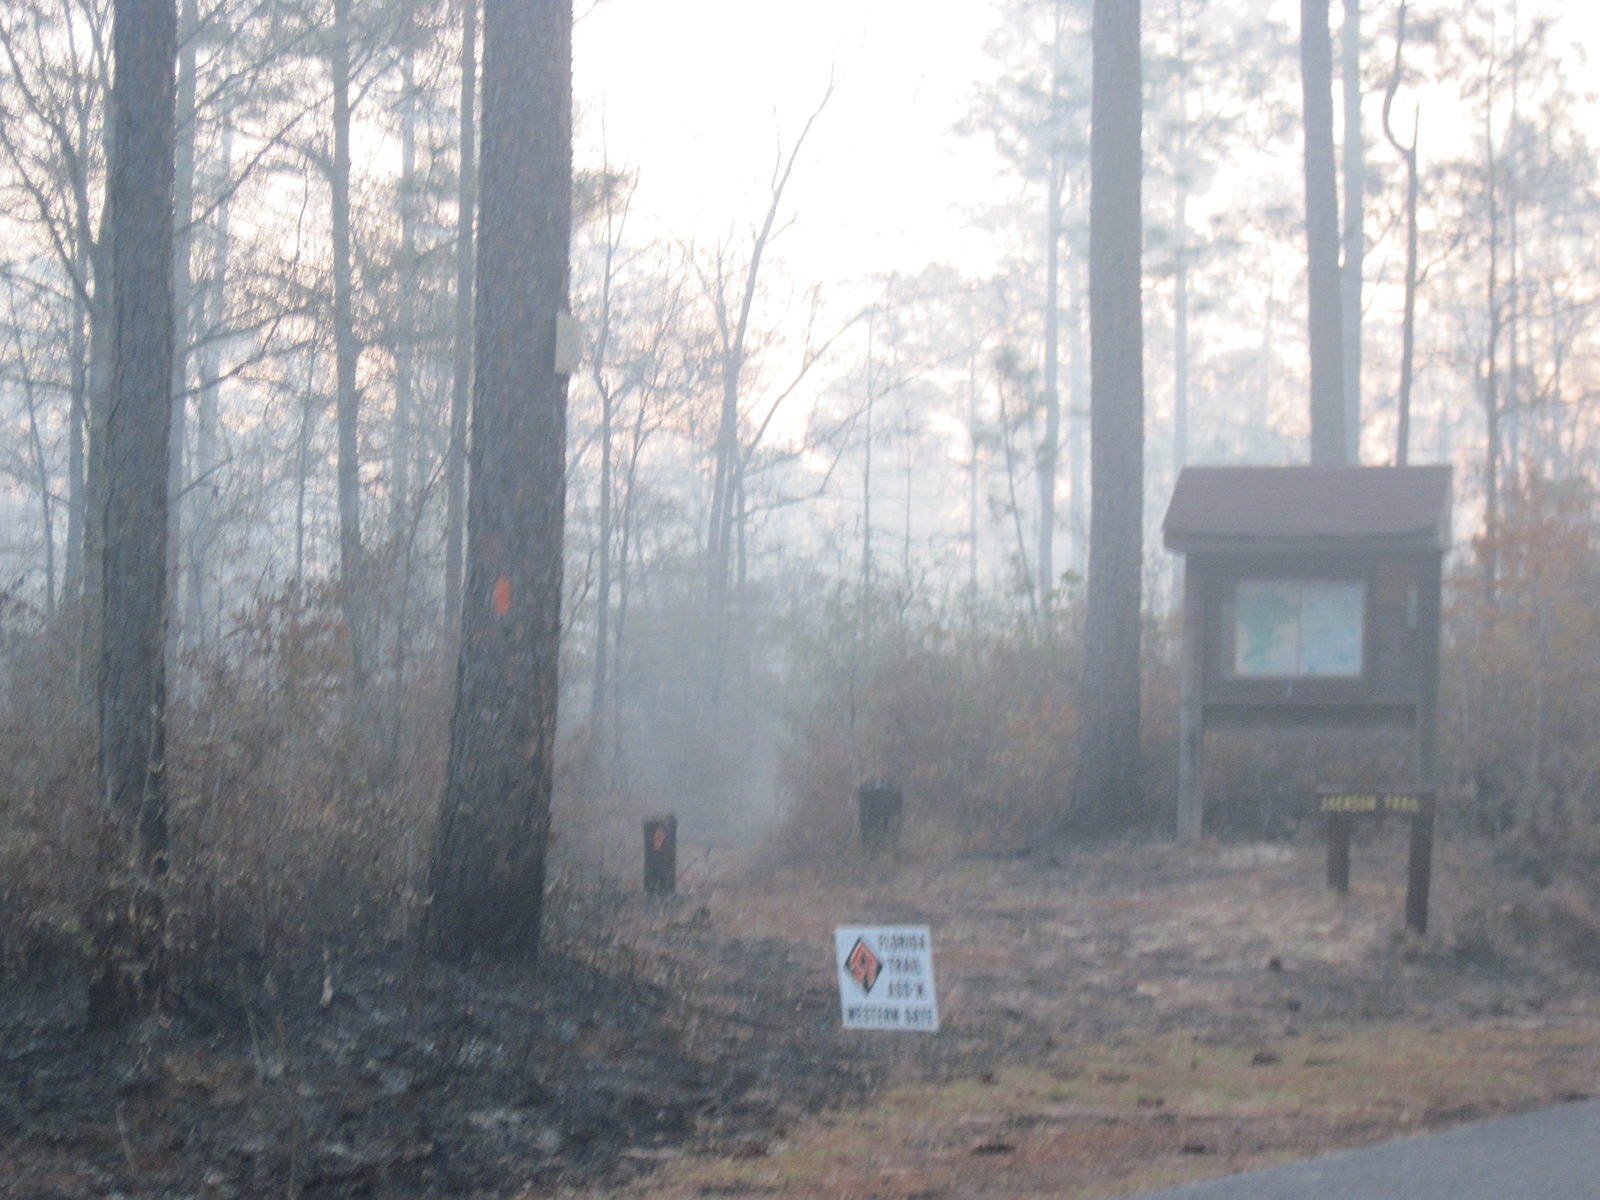 Smoke at the Jackson trailhead on Red Rock Rd